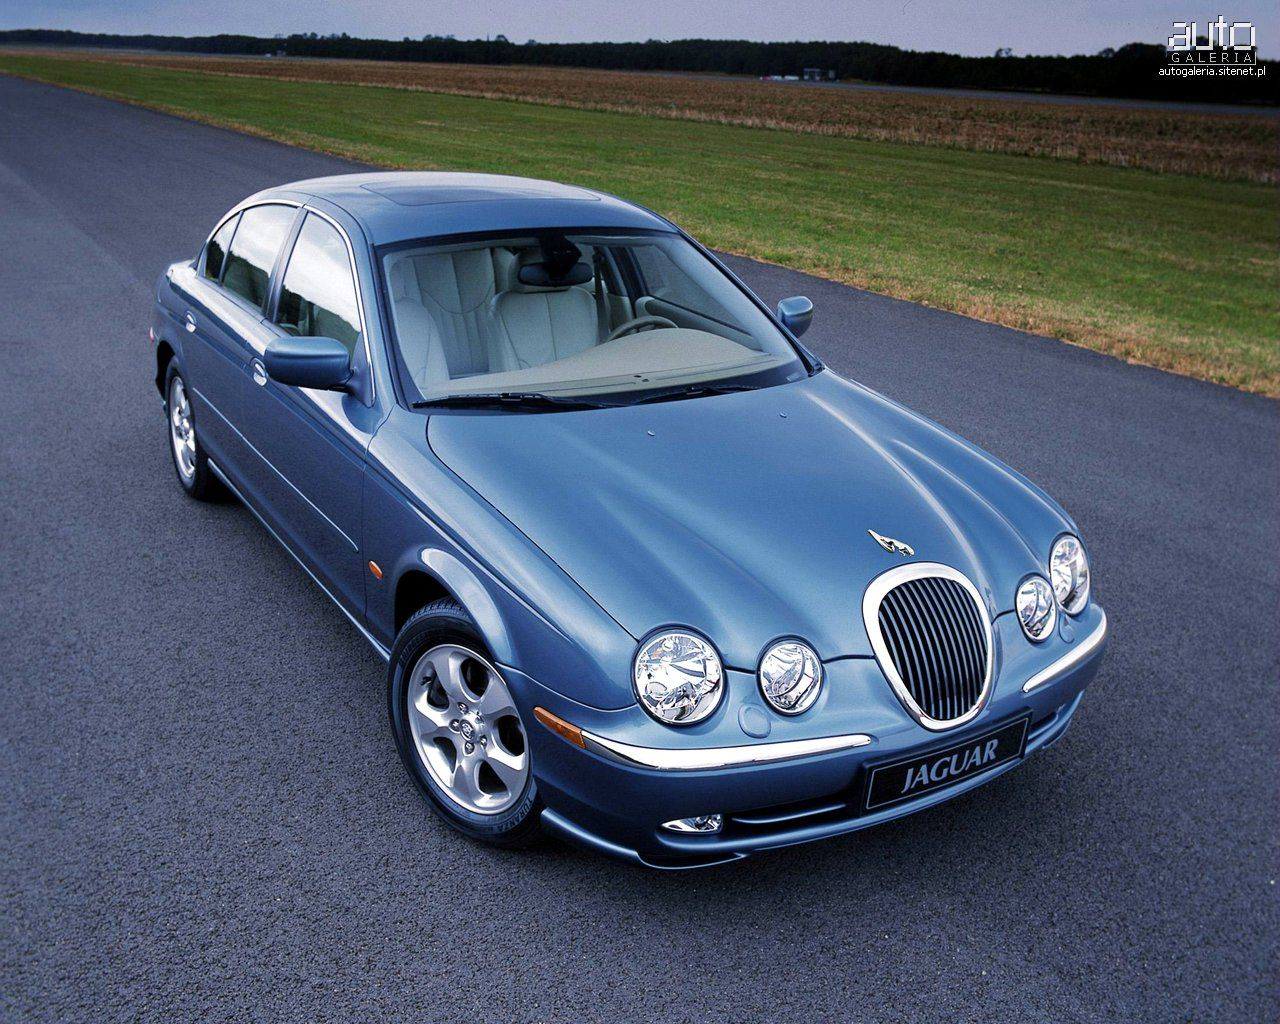 Used S Type Jaguar Cars For Sale